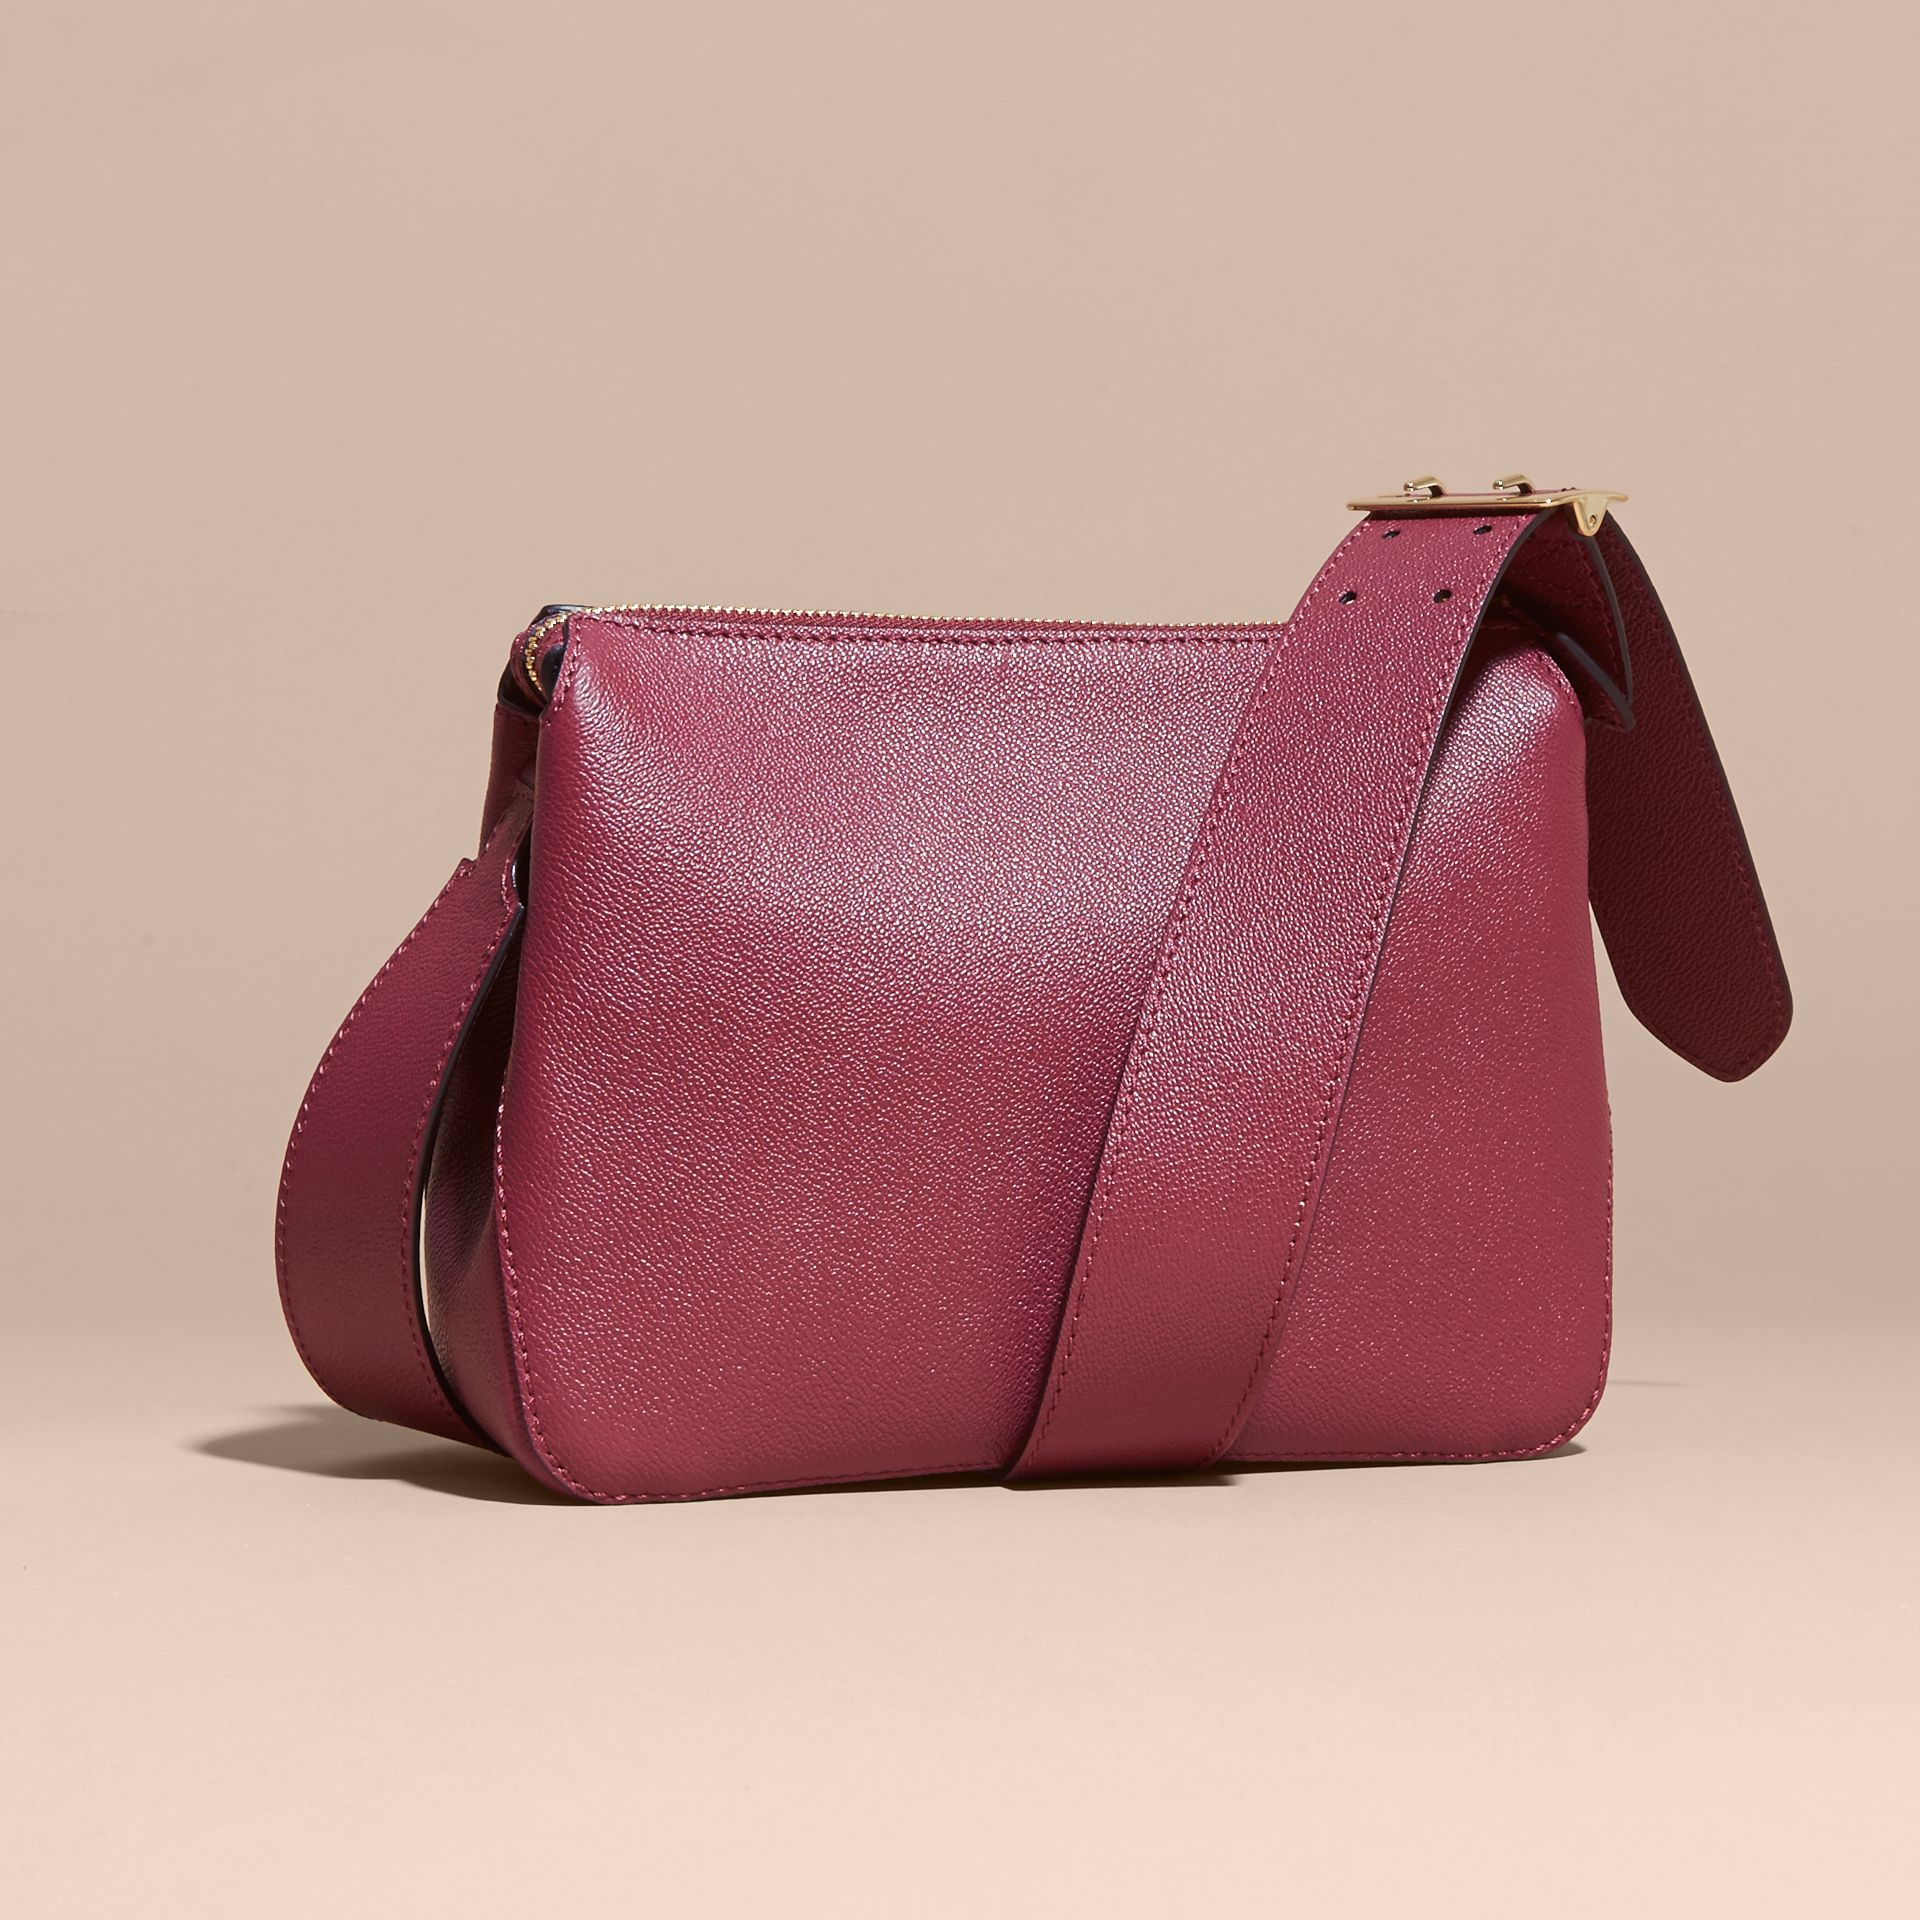 Buckle Detail Leather Crossbody Bag Dark Plum - gallery image 3